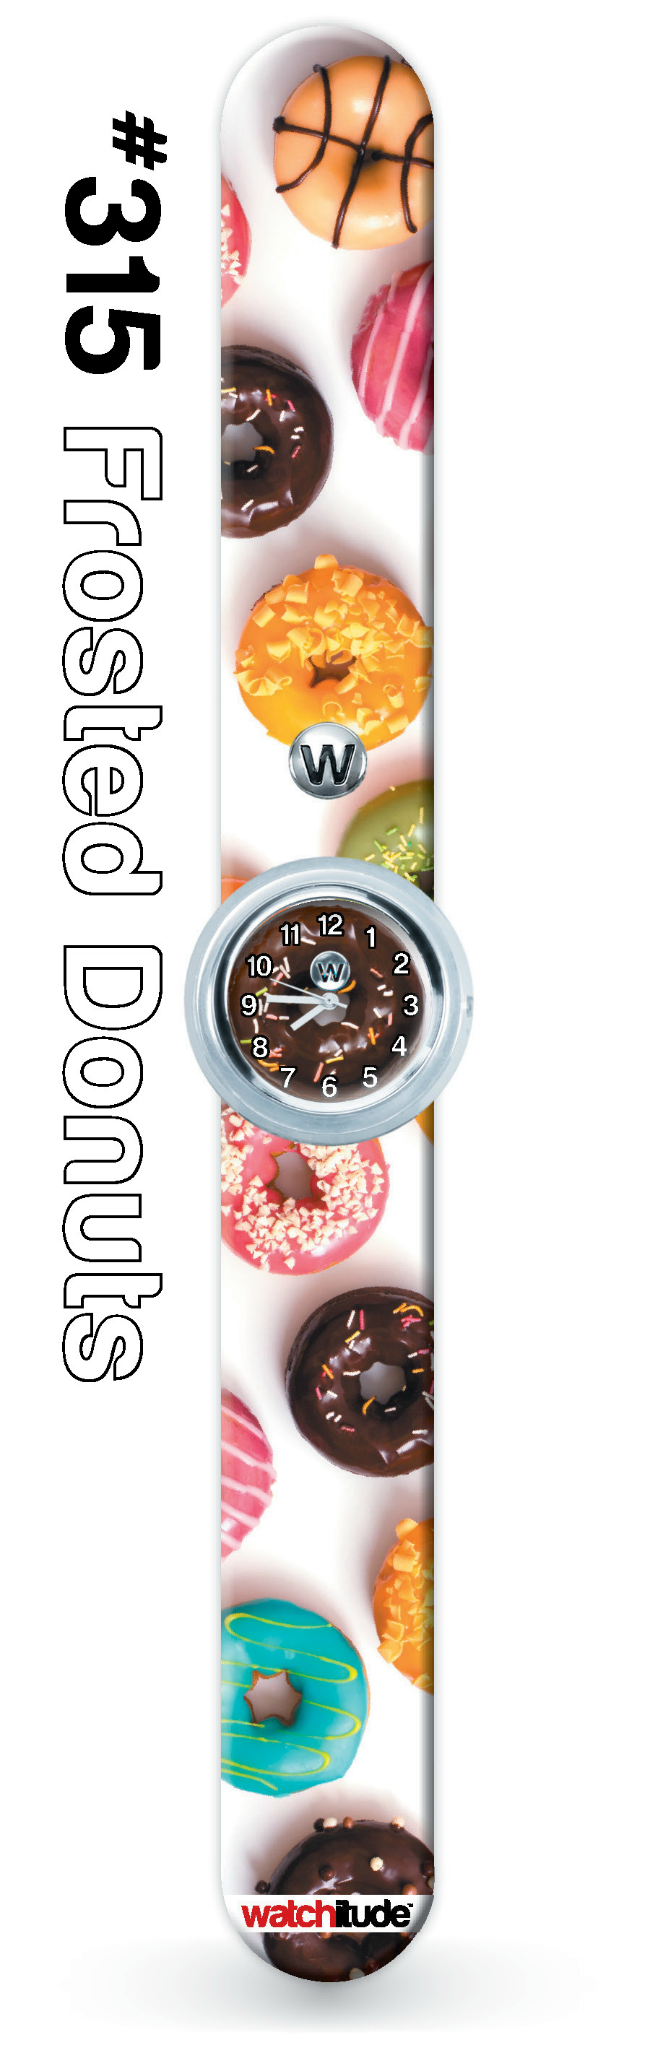 Watchitude- The Watch With Attitude